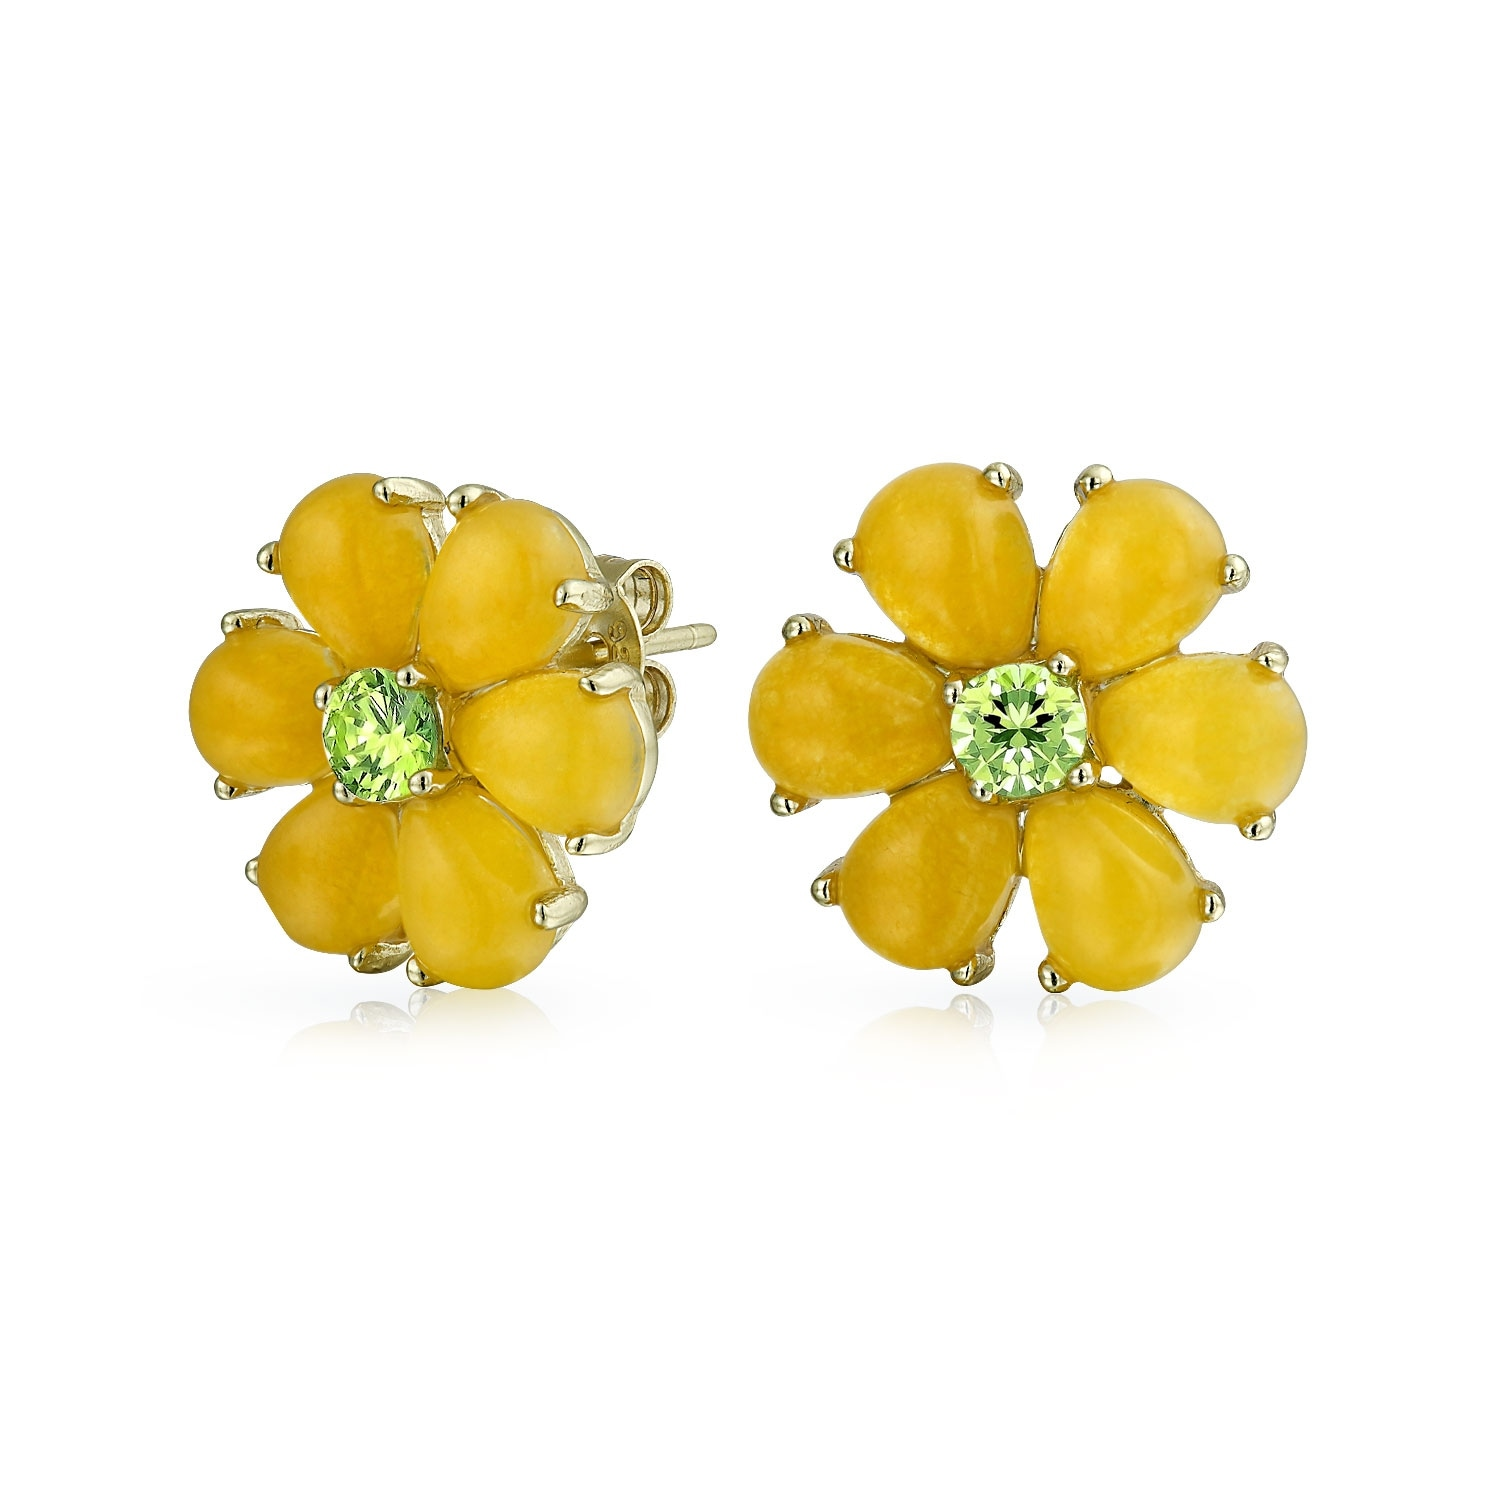 Shop bling jewelry daisy flower dyed peridot august birthstone shop bling jewelry daisy flower dyed peridot august birthstone yellow jade stud earrings gold plated 11mm free shipping on orders over 45 overstock mightylinksfo